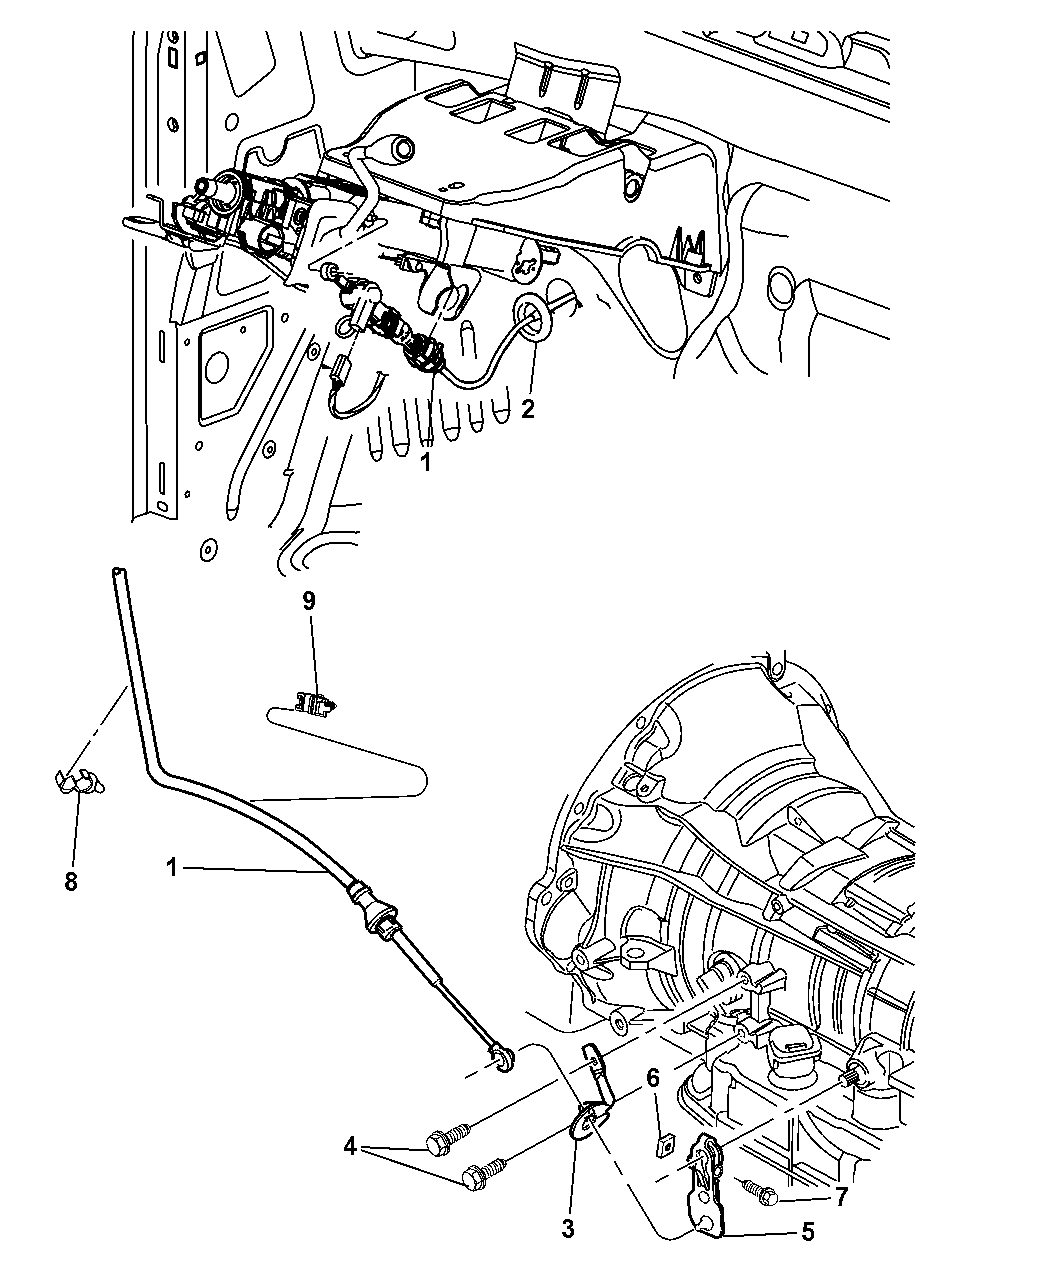 2008 Chrysler Aspen Gearshift Lever, Cable And Bracket